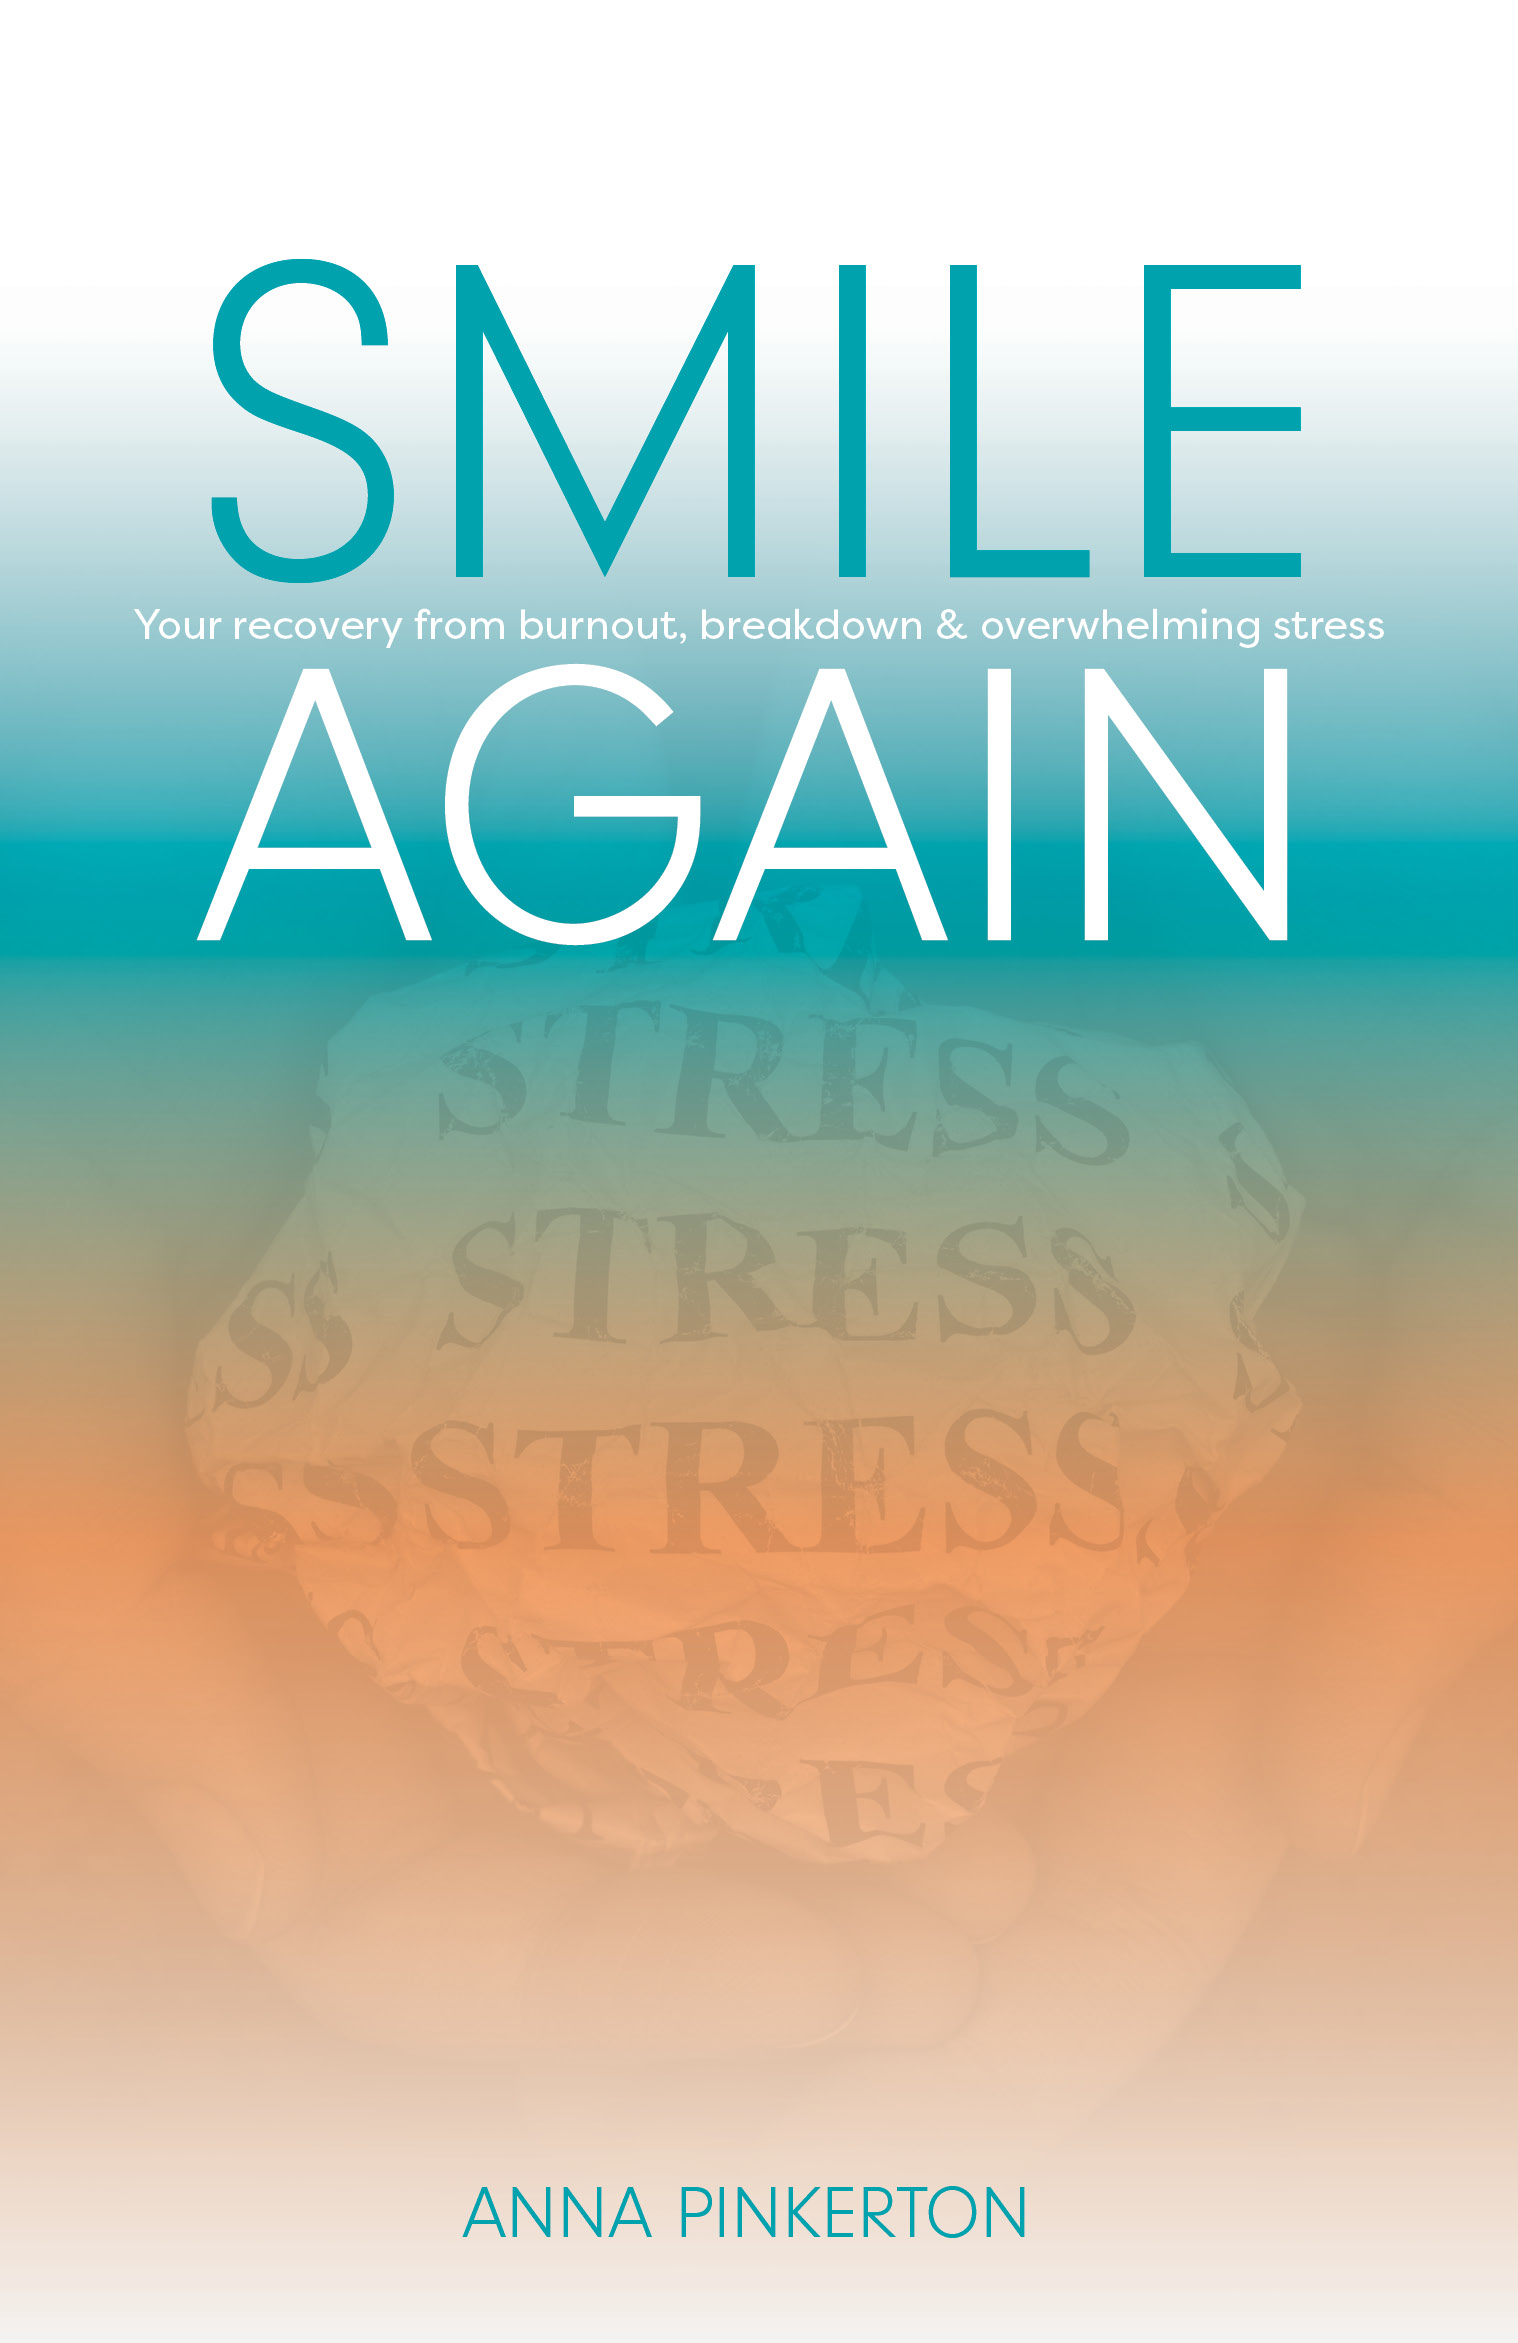 Smile Again by Anna Pinkerton